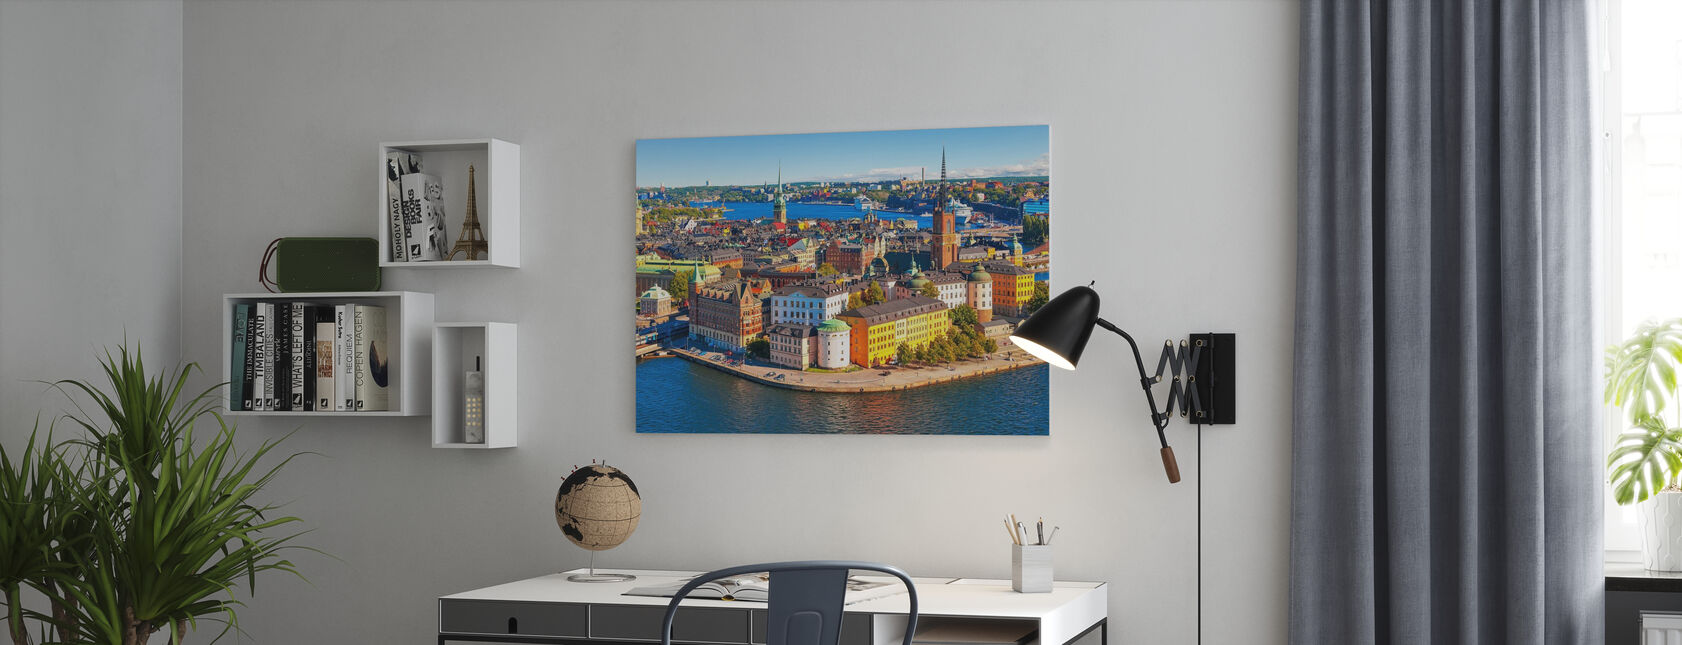 Panorama of the Old Town in Stockholm - Canvas print - Office